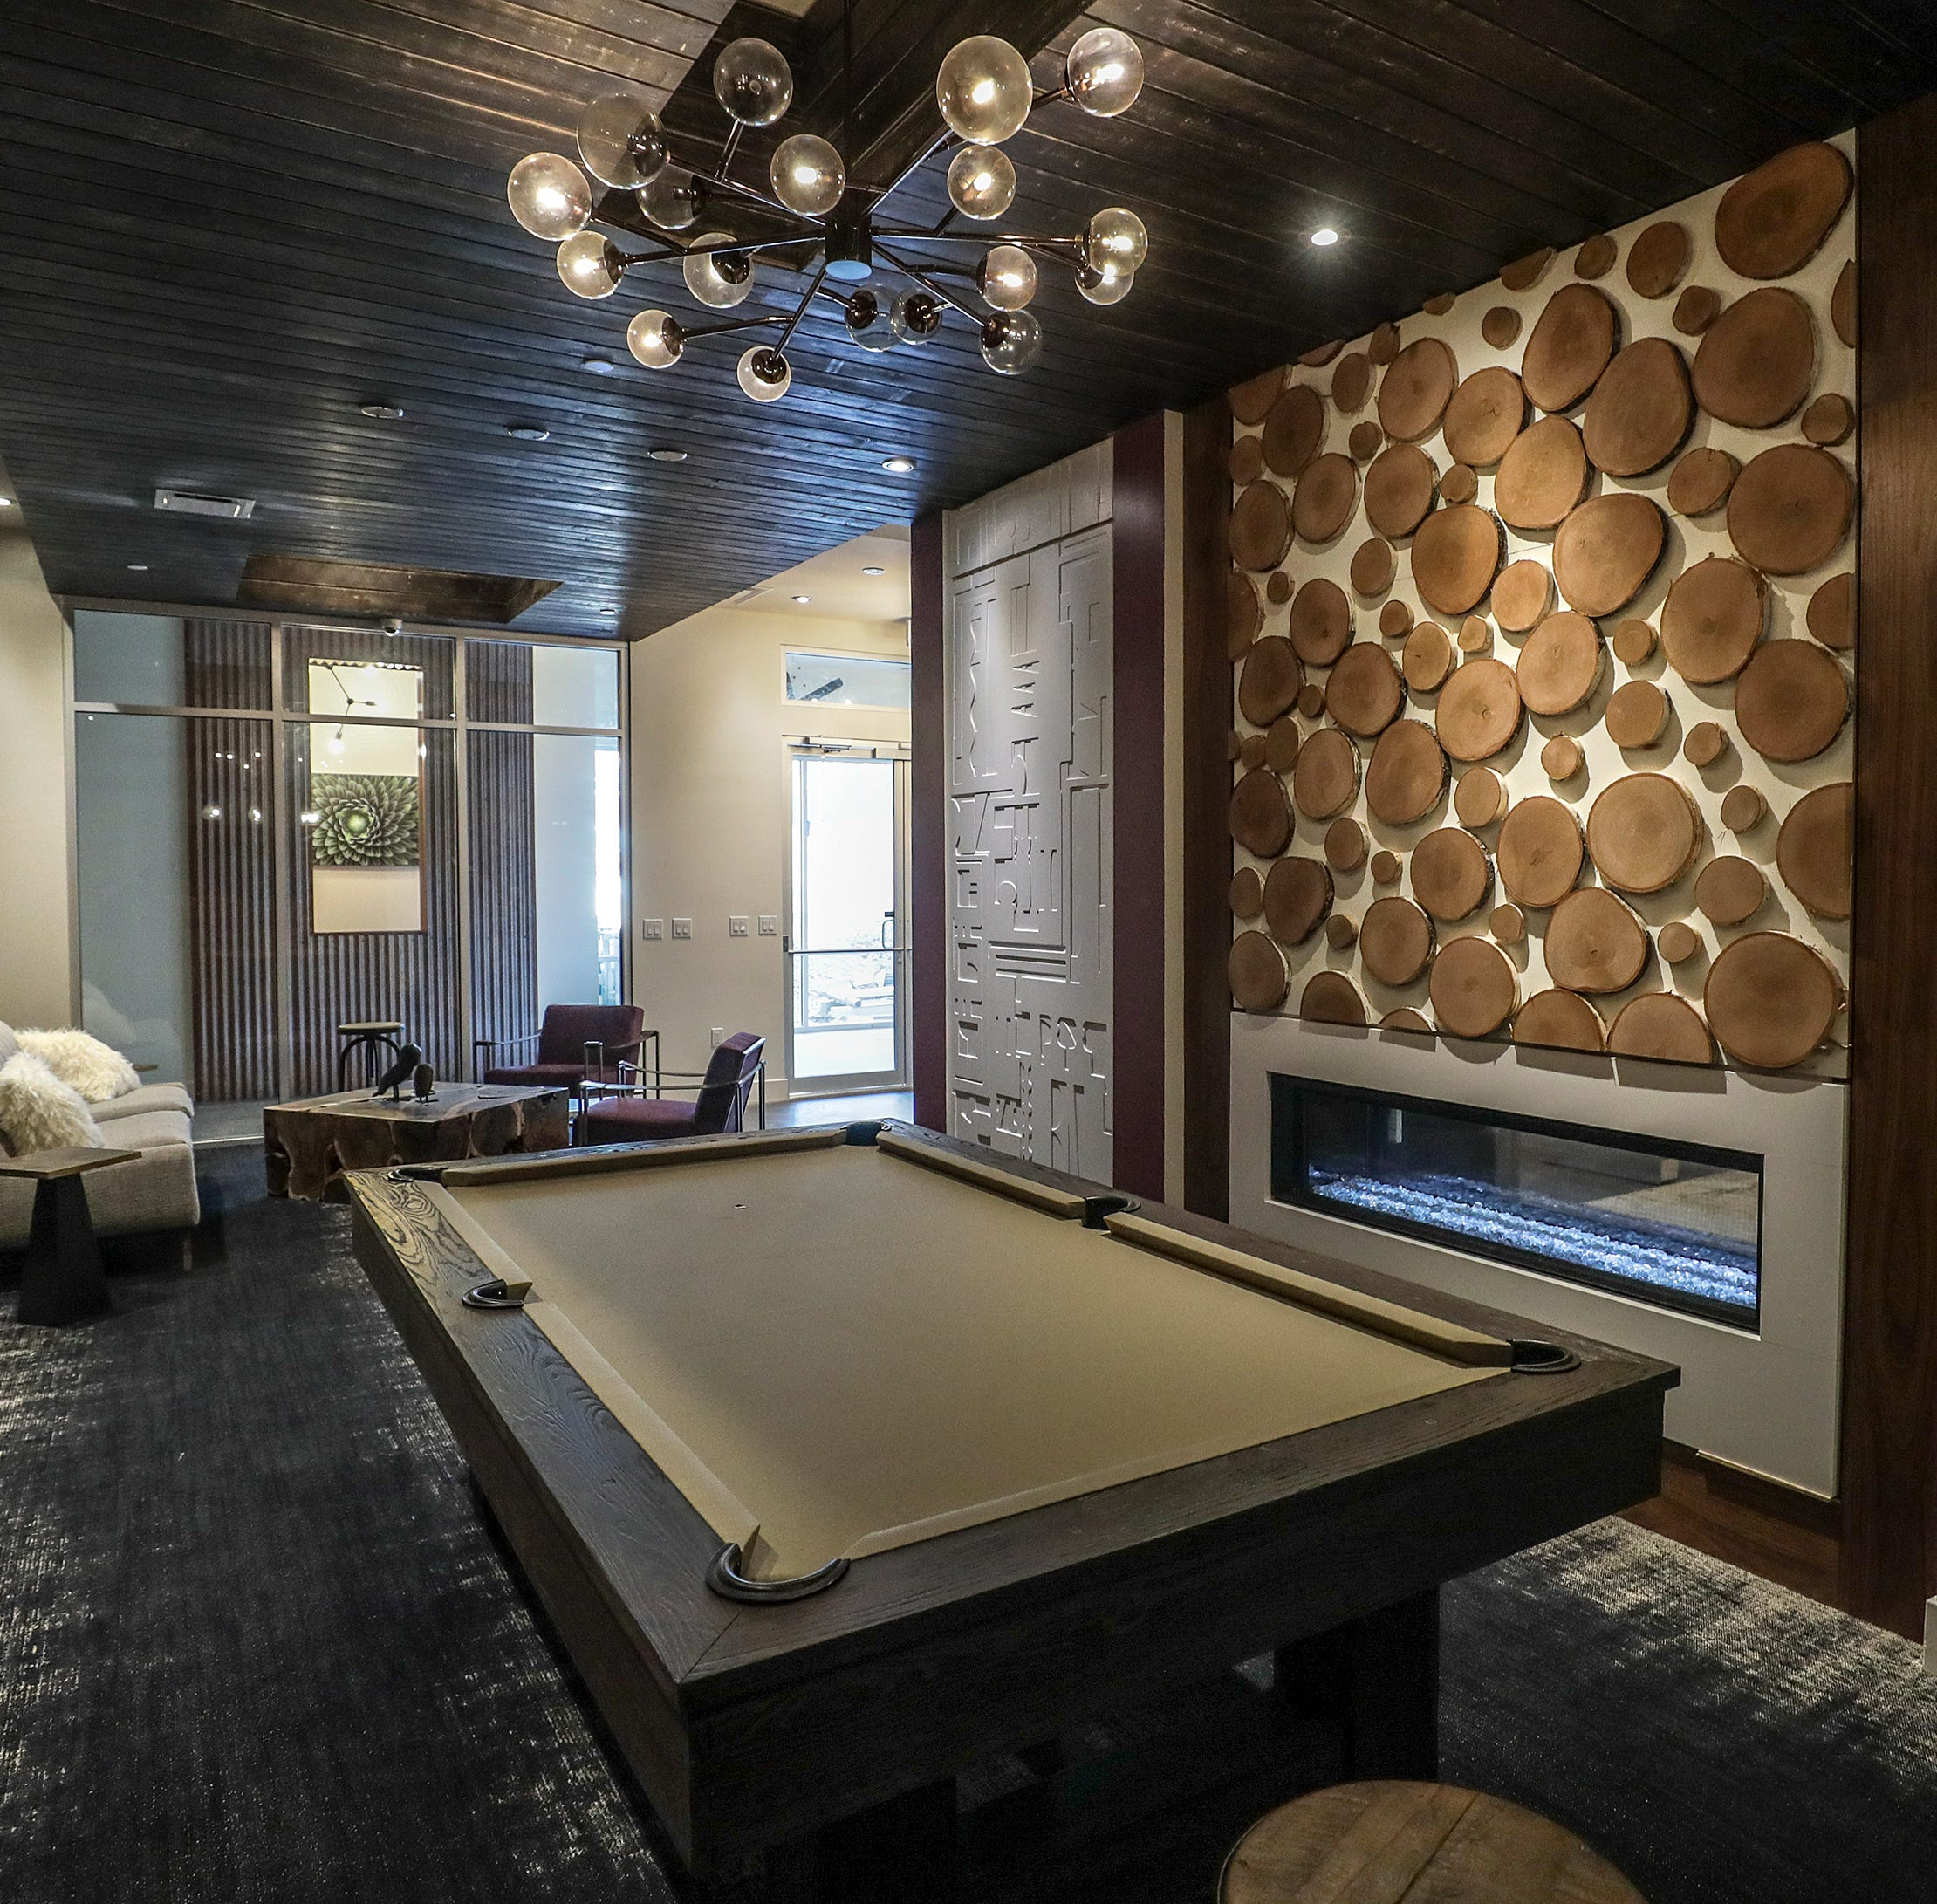 See inside downtown Louisville's new, luxurious Edge on 4 apartments